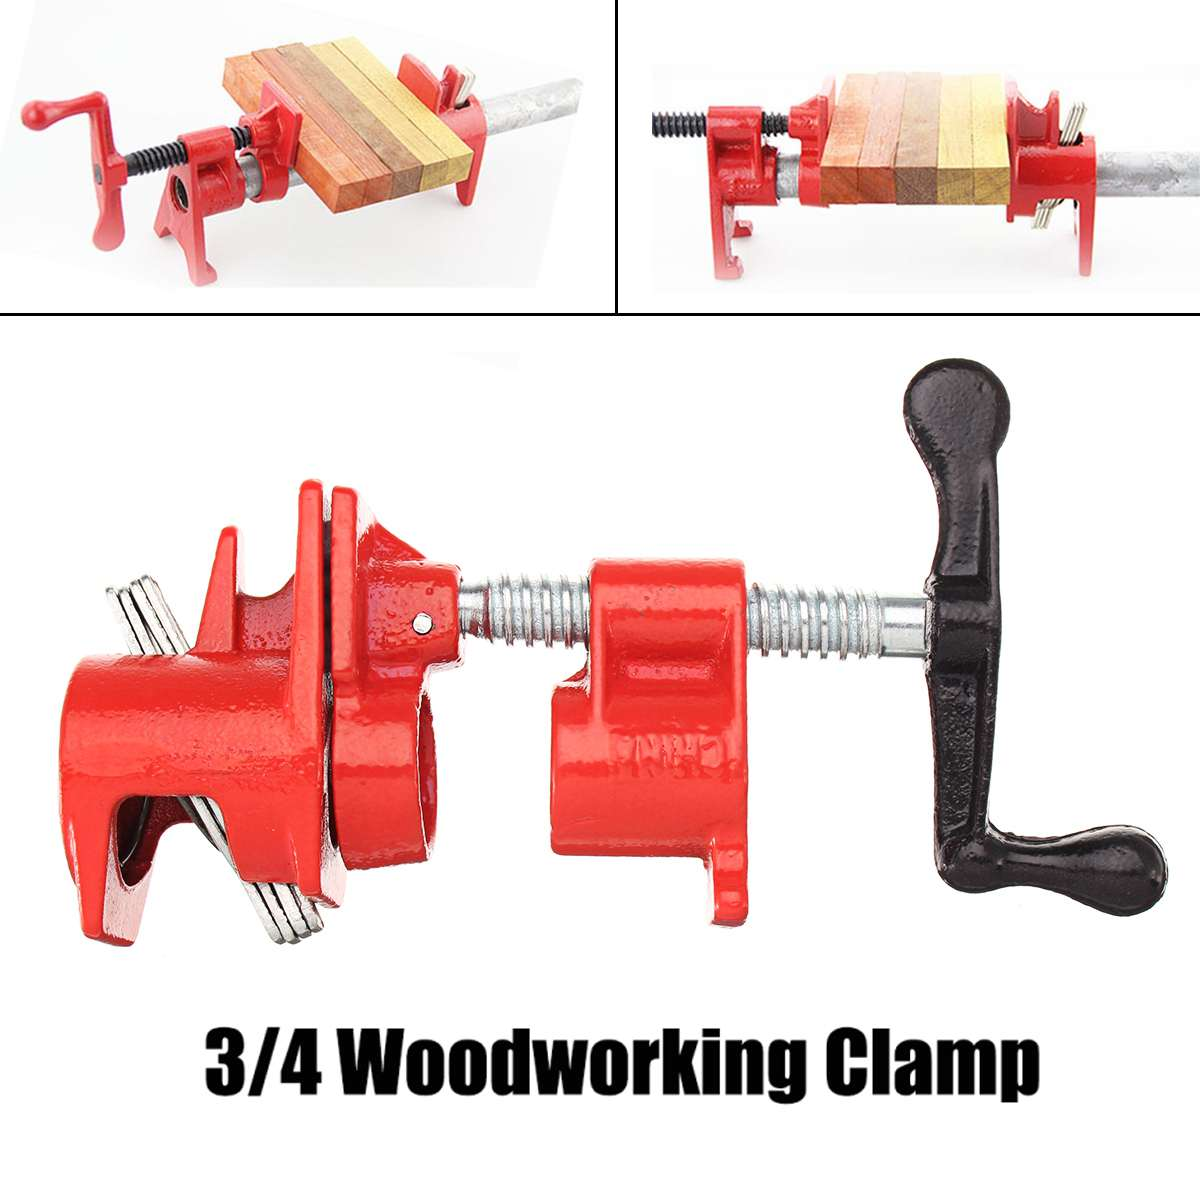 3/4 Heavy   Pipe Clamp Set Quick Release Wood Gluing Woodworking Cast Iron3/4 Heavy   Pipe Clamp Set Quick Release Wood Gluing Woodworking Cast Iron